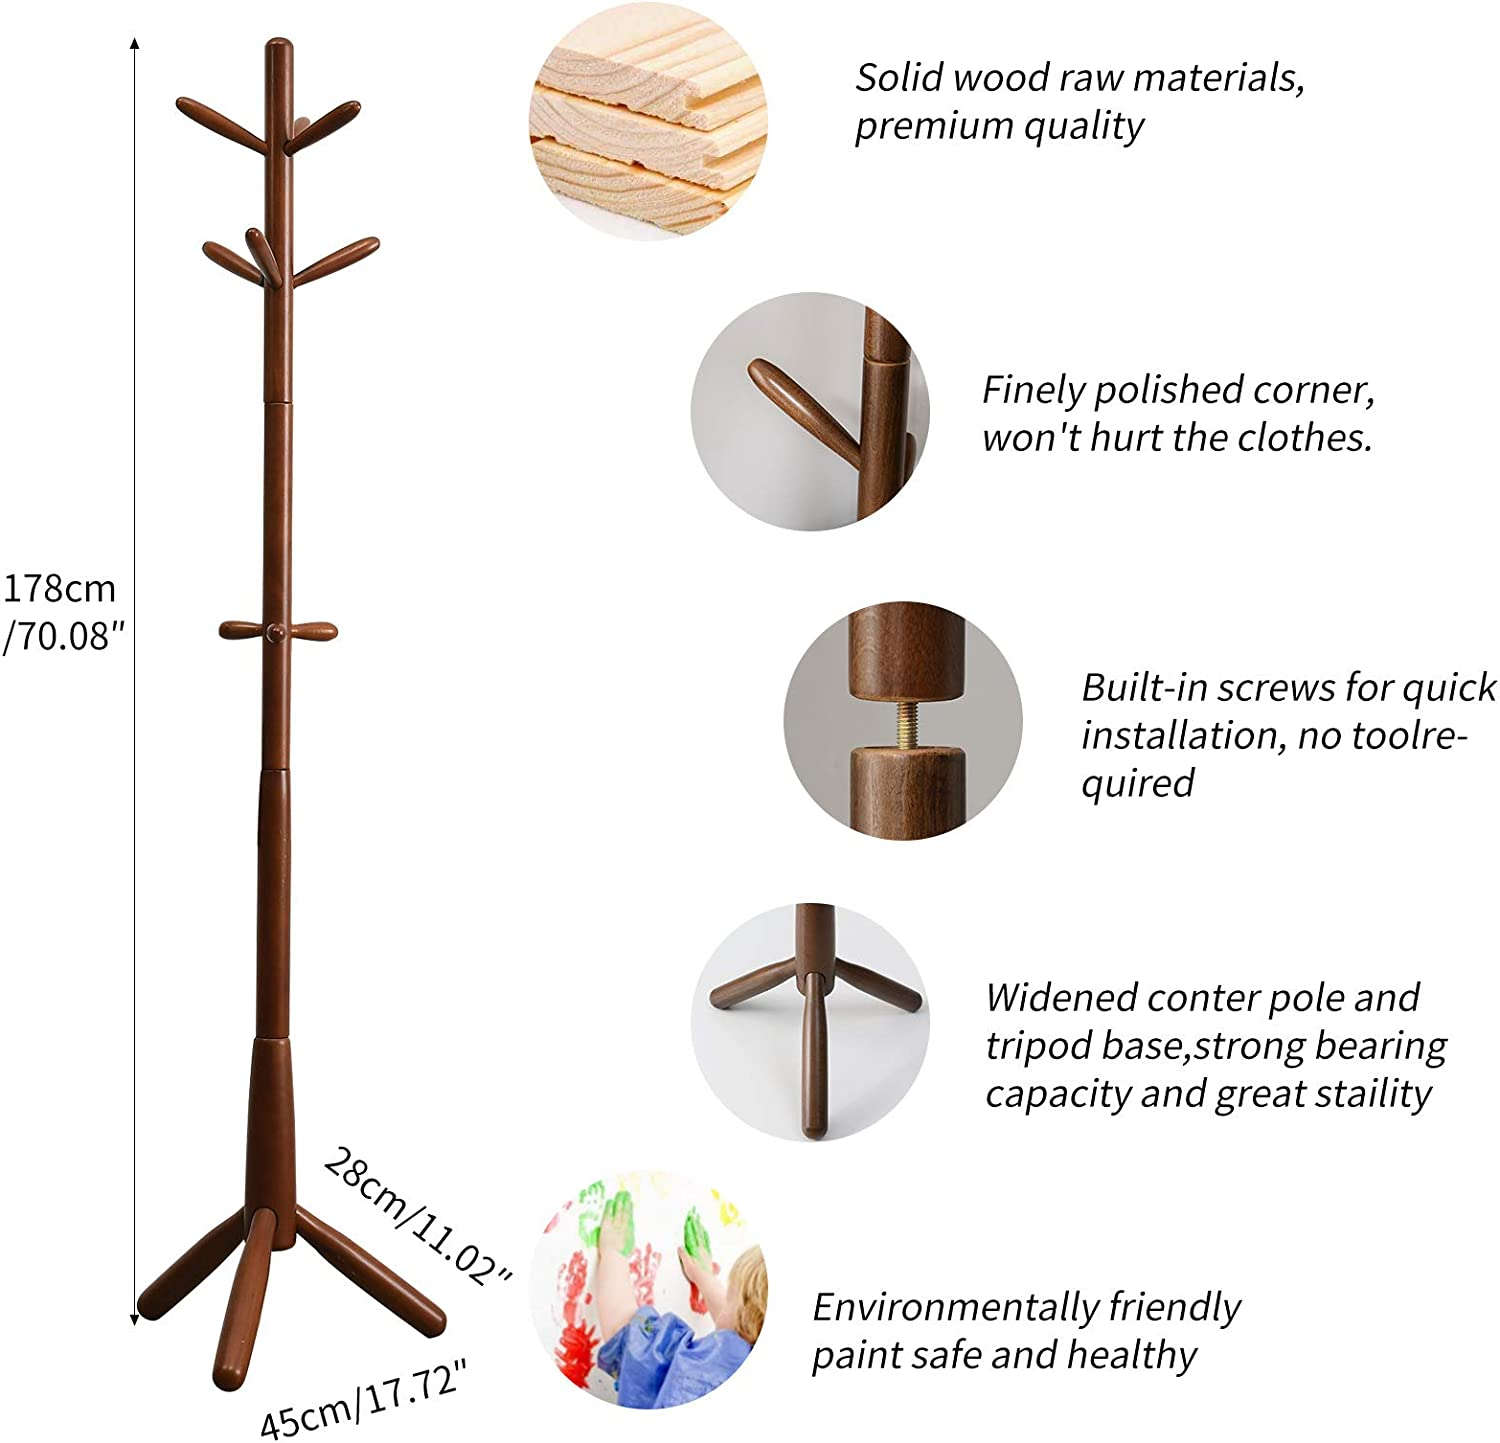 9 Hooks, Umbrella- Scarves Purse Entryway Hall Tree Coat Tree with 3 Wood Prong Legs for Hat Easy Assembly Brown URF-1210 Handbags Clothes YMYNY Wooden Coat Rack Stand